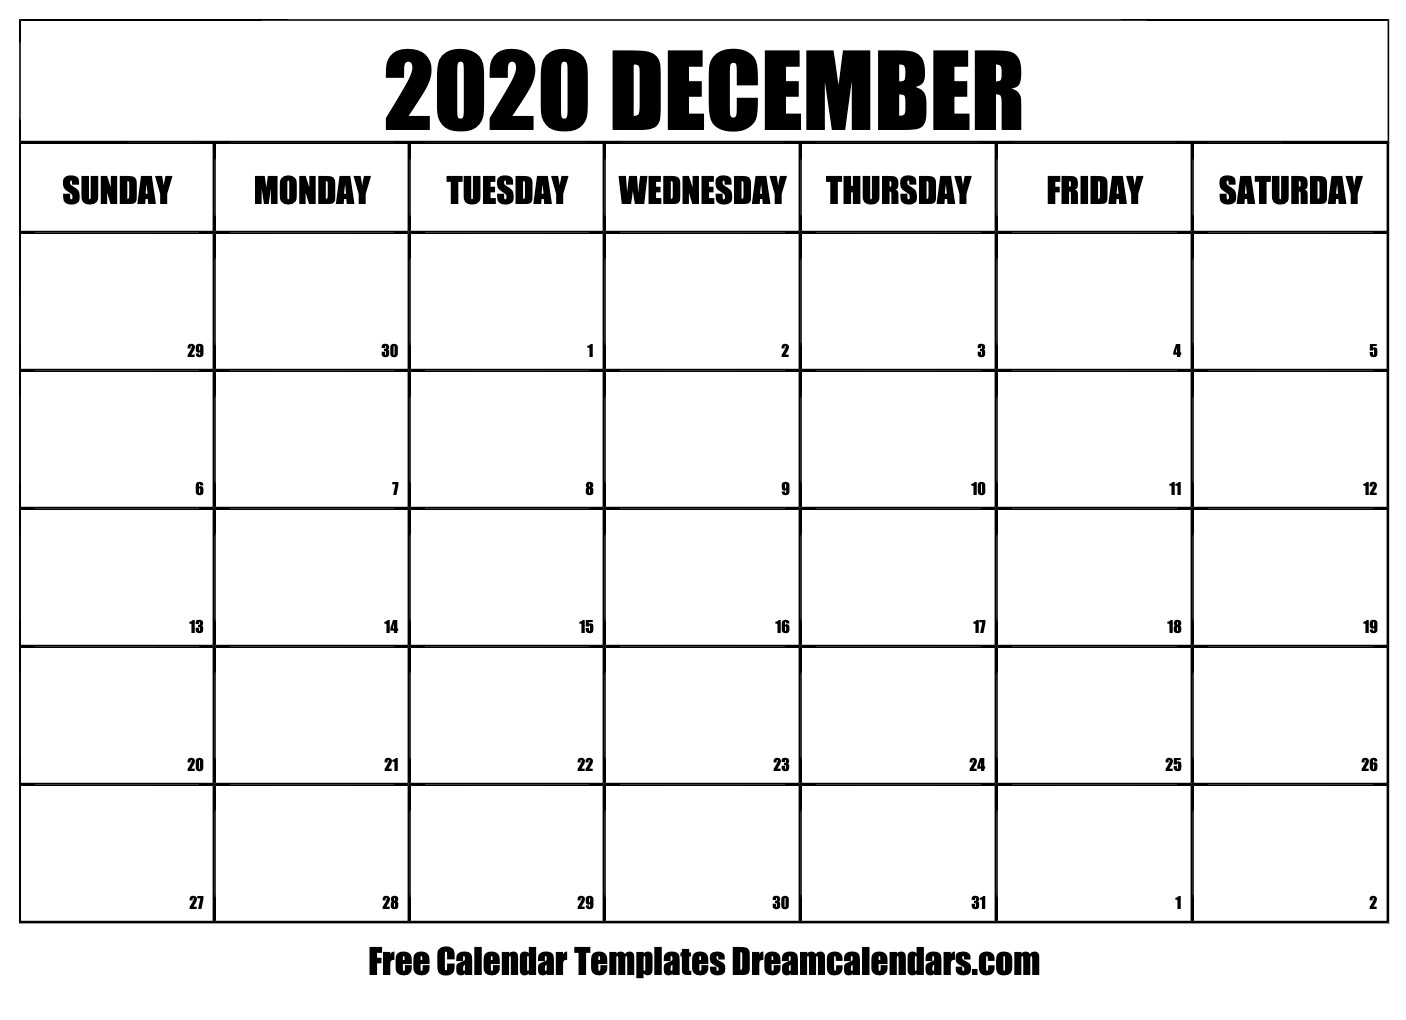 Free Blank December 2020 Printable Calendar regarding Calendar 2020 December